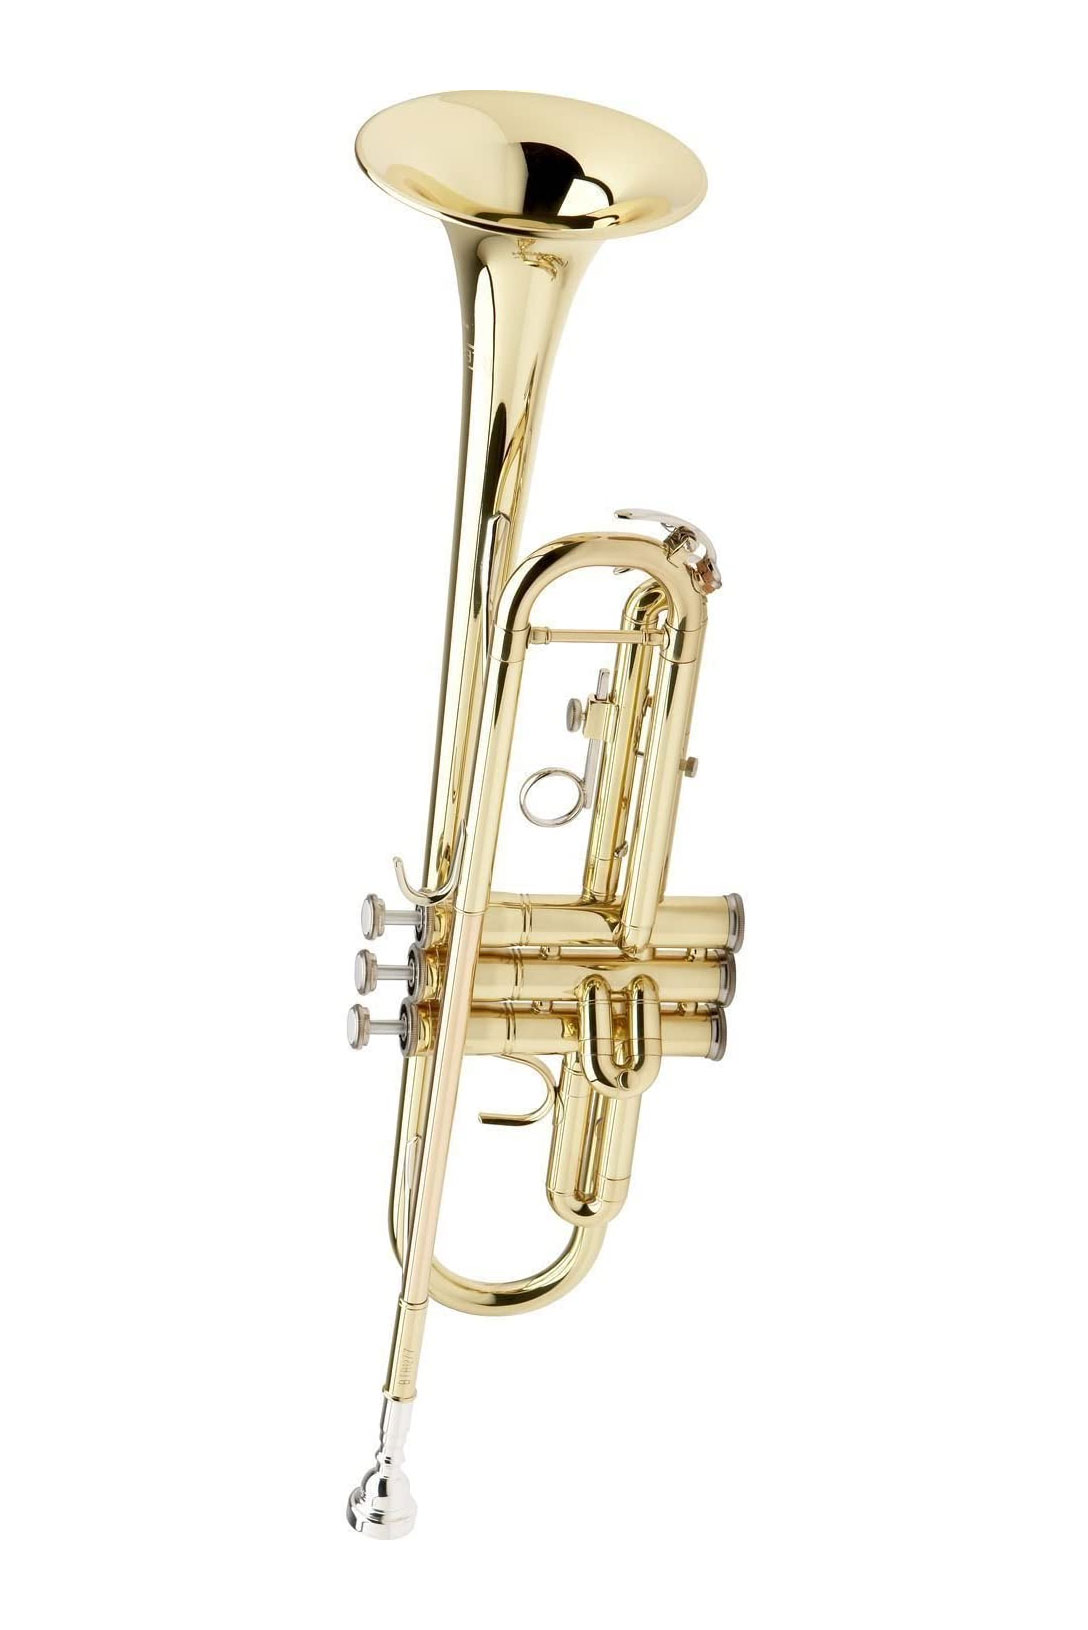 BTR-1277 Blessing Student Bb Trumpet, Lacquer